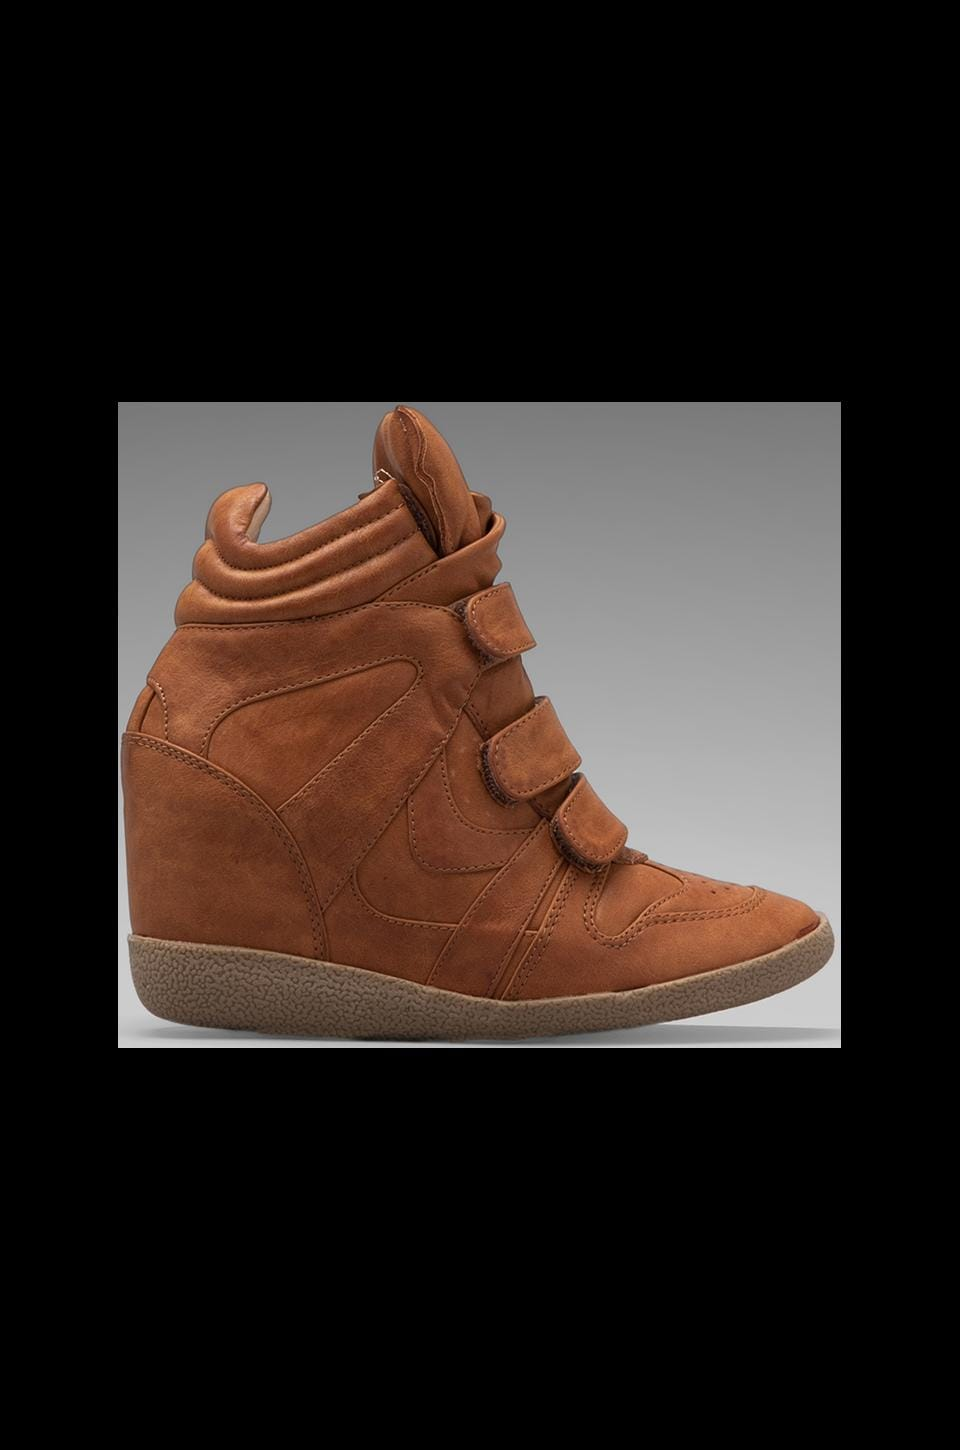 Steve Madden Hilight Sneaker in Cognac Leather